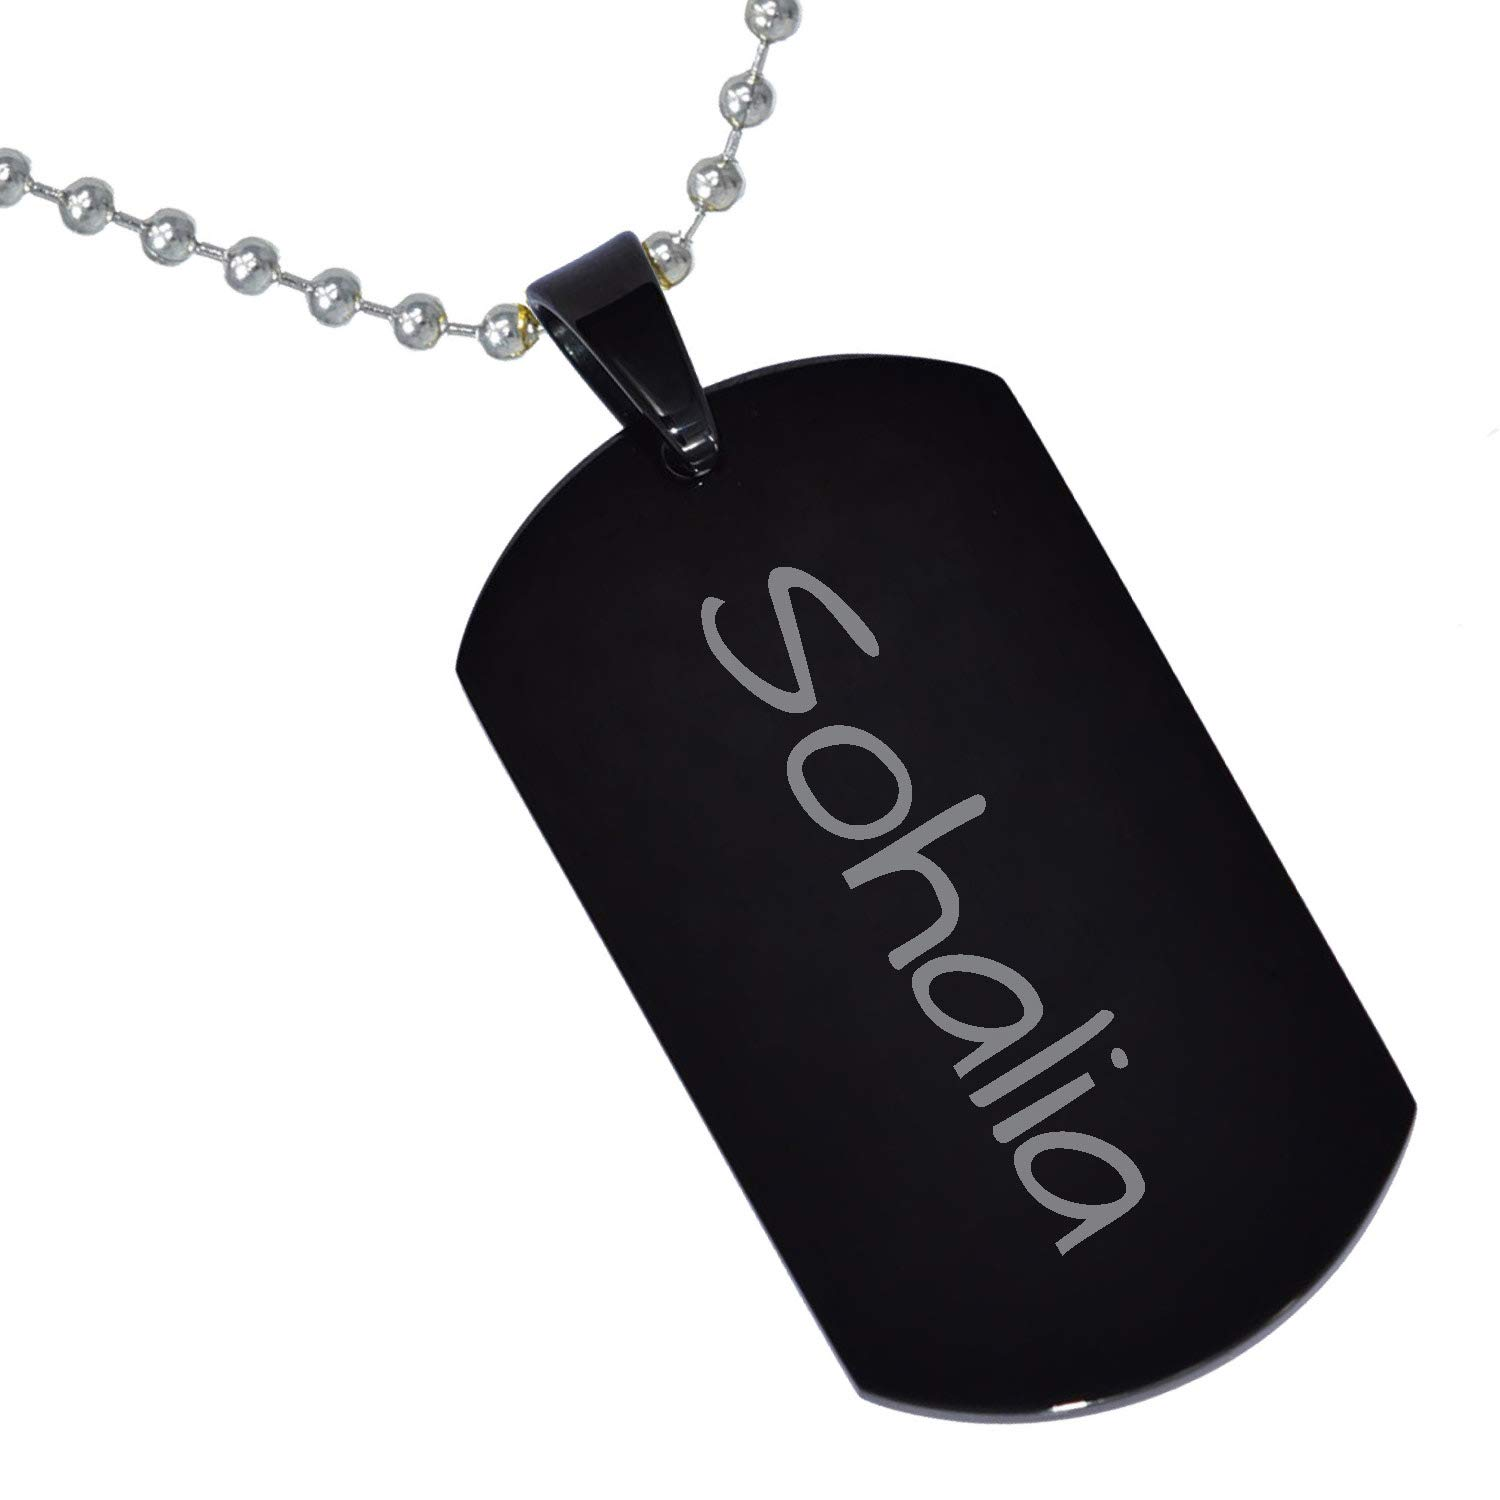 Stainless Steel Silver Gold Black Rose Gold Color Baby Name Sohalia Engraved Personalized Gifts For Son Daughter Boyfriend Girlfriend Initial Customizable Pendant Necklace Dog Tags 24 Ball Chain